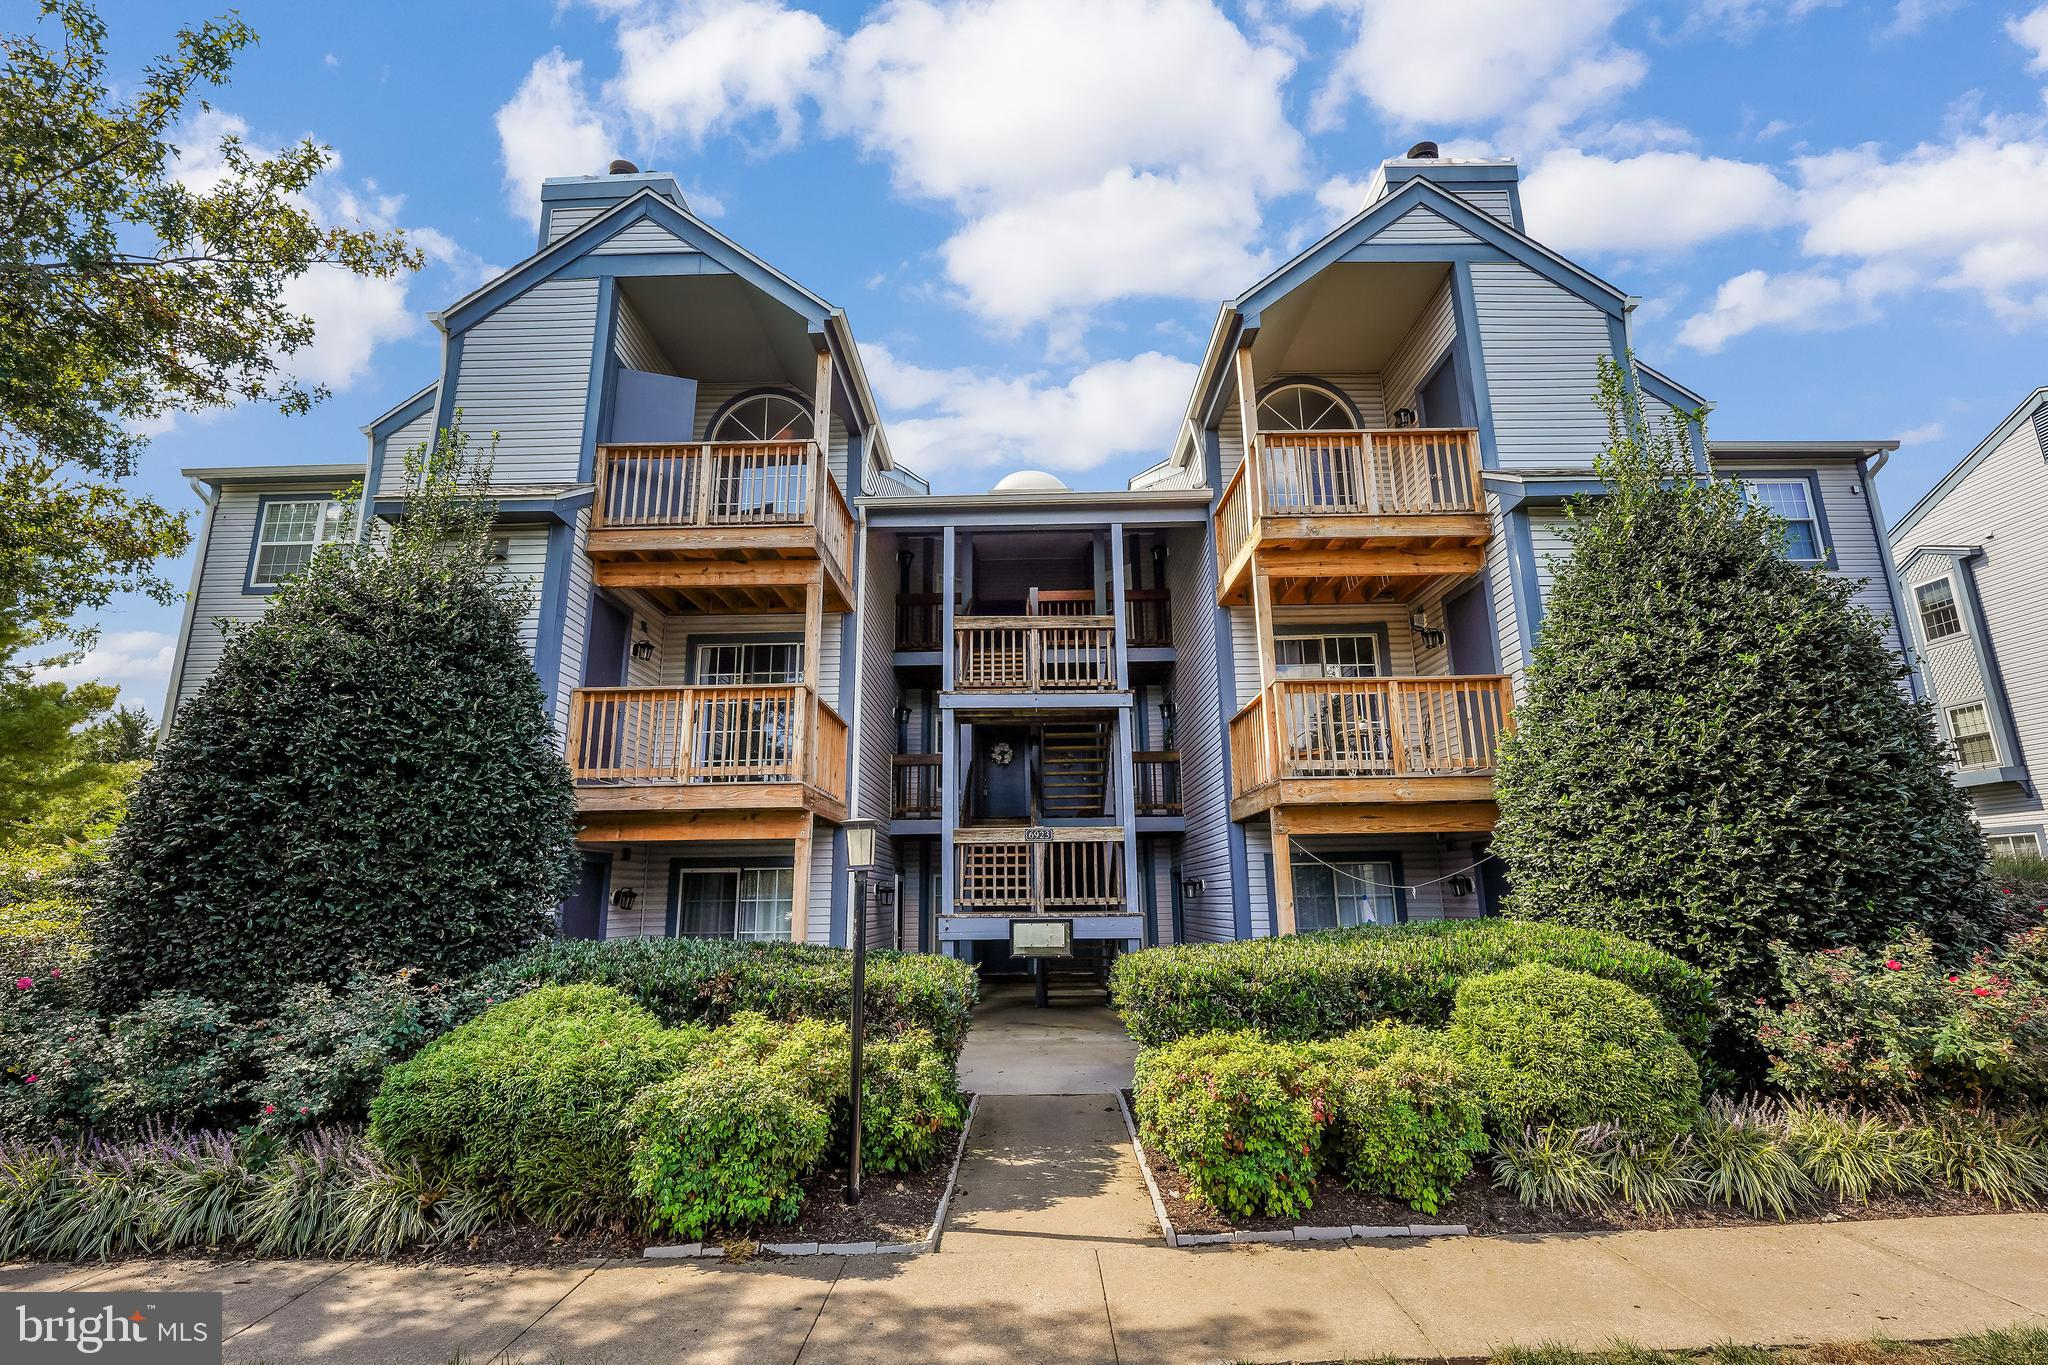 Sought after largest TOP FLOOR unit in Manchester Lakes! Renovated from top to bottom and ready for a new owner.  Complex is VA approved! This home and community has it all. Beautiful updated and upgraded kitchen with granite countertops, stainless steel appliances, large living spaces that can accommodate the largest of furniture, full size stackable washer and dryer, large bedrooms, the primary bedroom is  a true suite with a large walk in closet and spa like bathroom with HUGE soaking tub.  Walk to Amazon Fresh from your new home! Kingstowne Towne Center is also within walking distance. Springfield Town Center is a quick drive down the road too. The community has a pool, community center with gym, tennis courts, basket ball courts, playground and so much more. The condo fee includes water, trash, sewer and snow removal. Priced below other units of this size for a quick sale!  Come check it out!